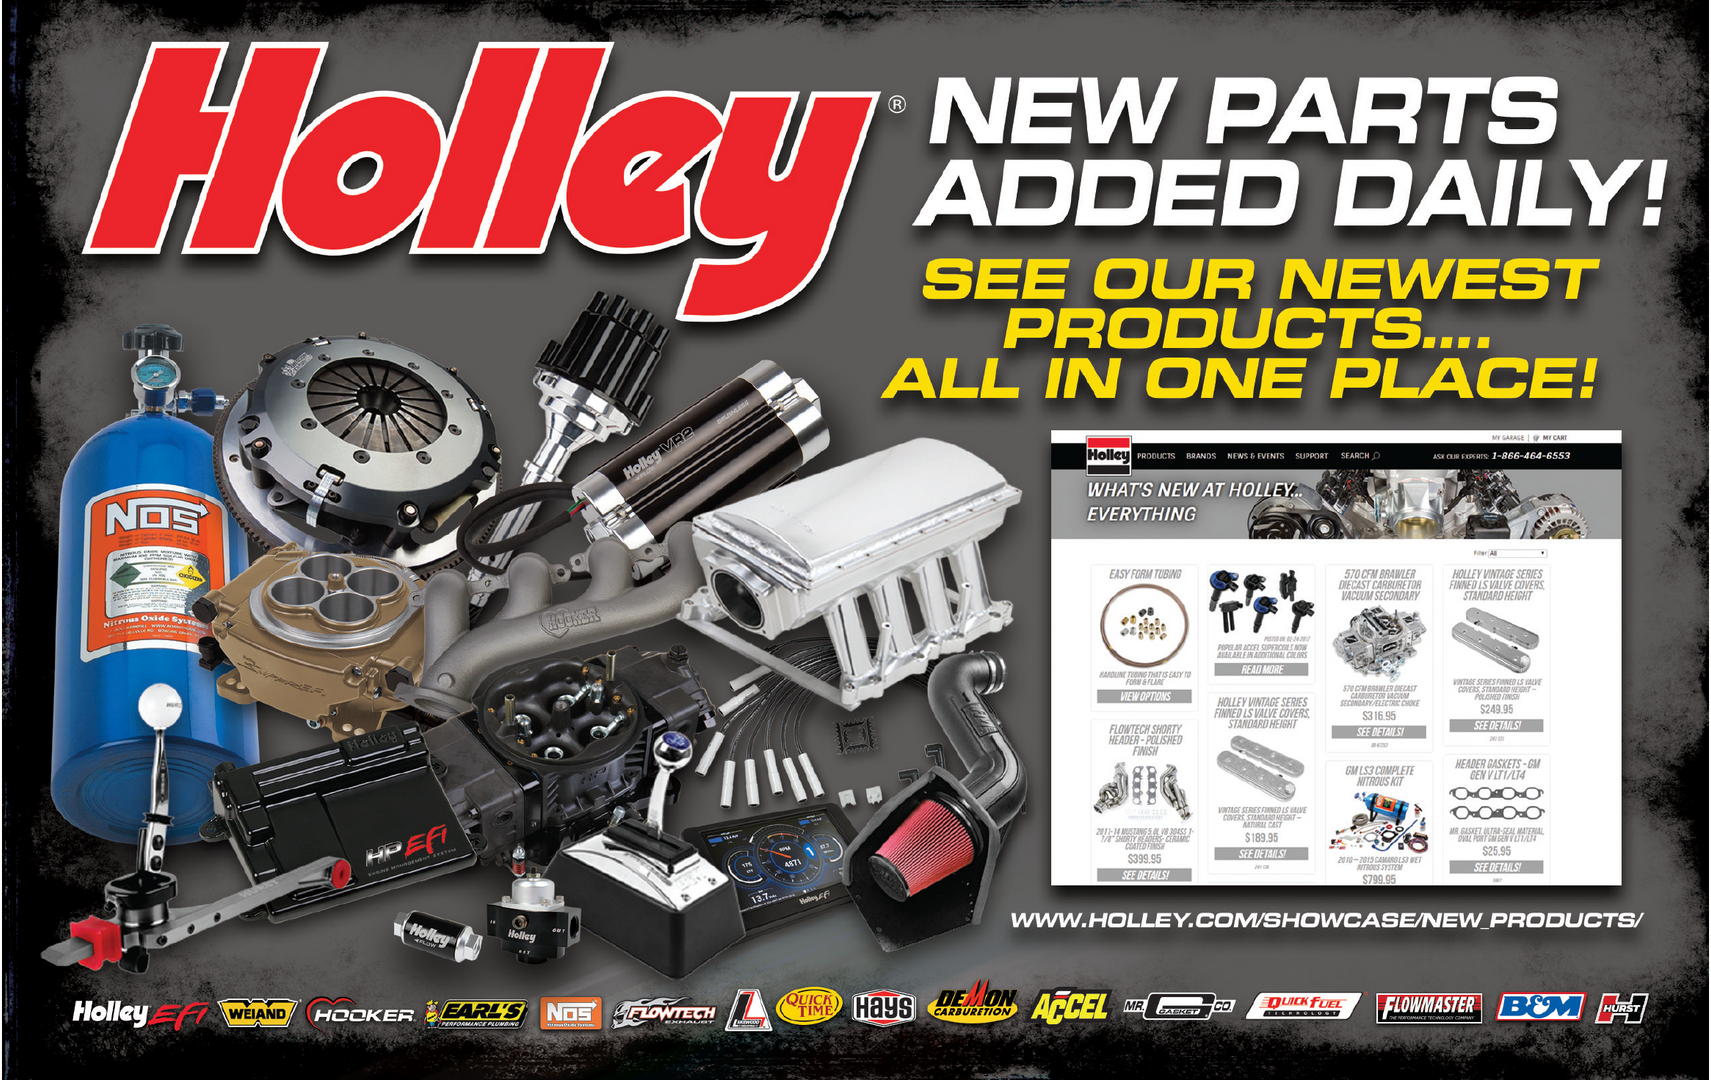 Holley New Parts'.png